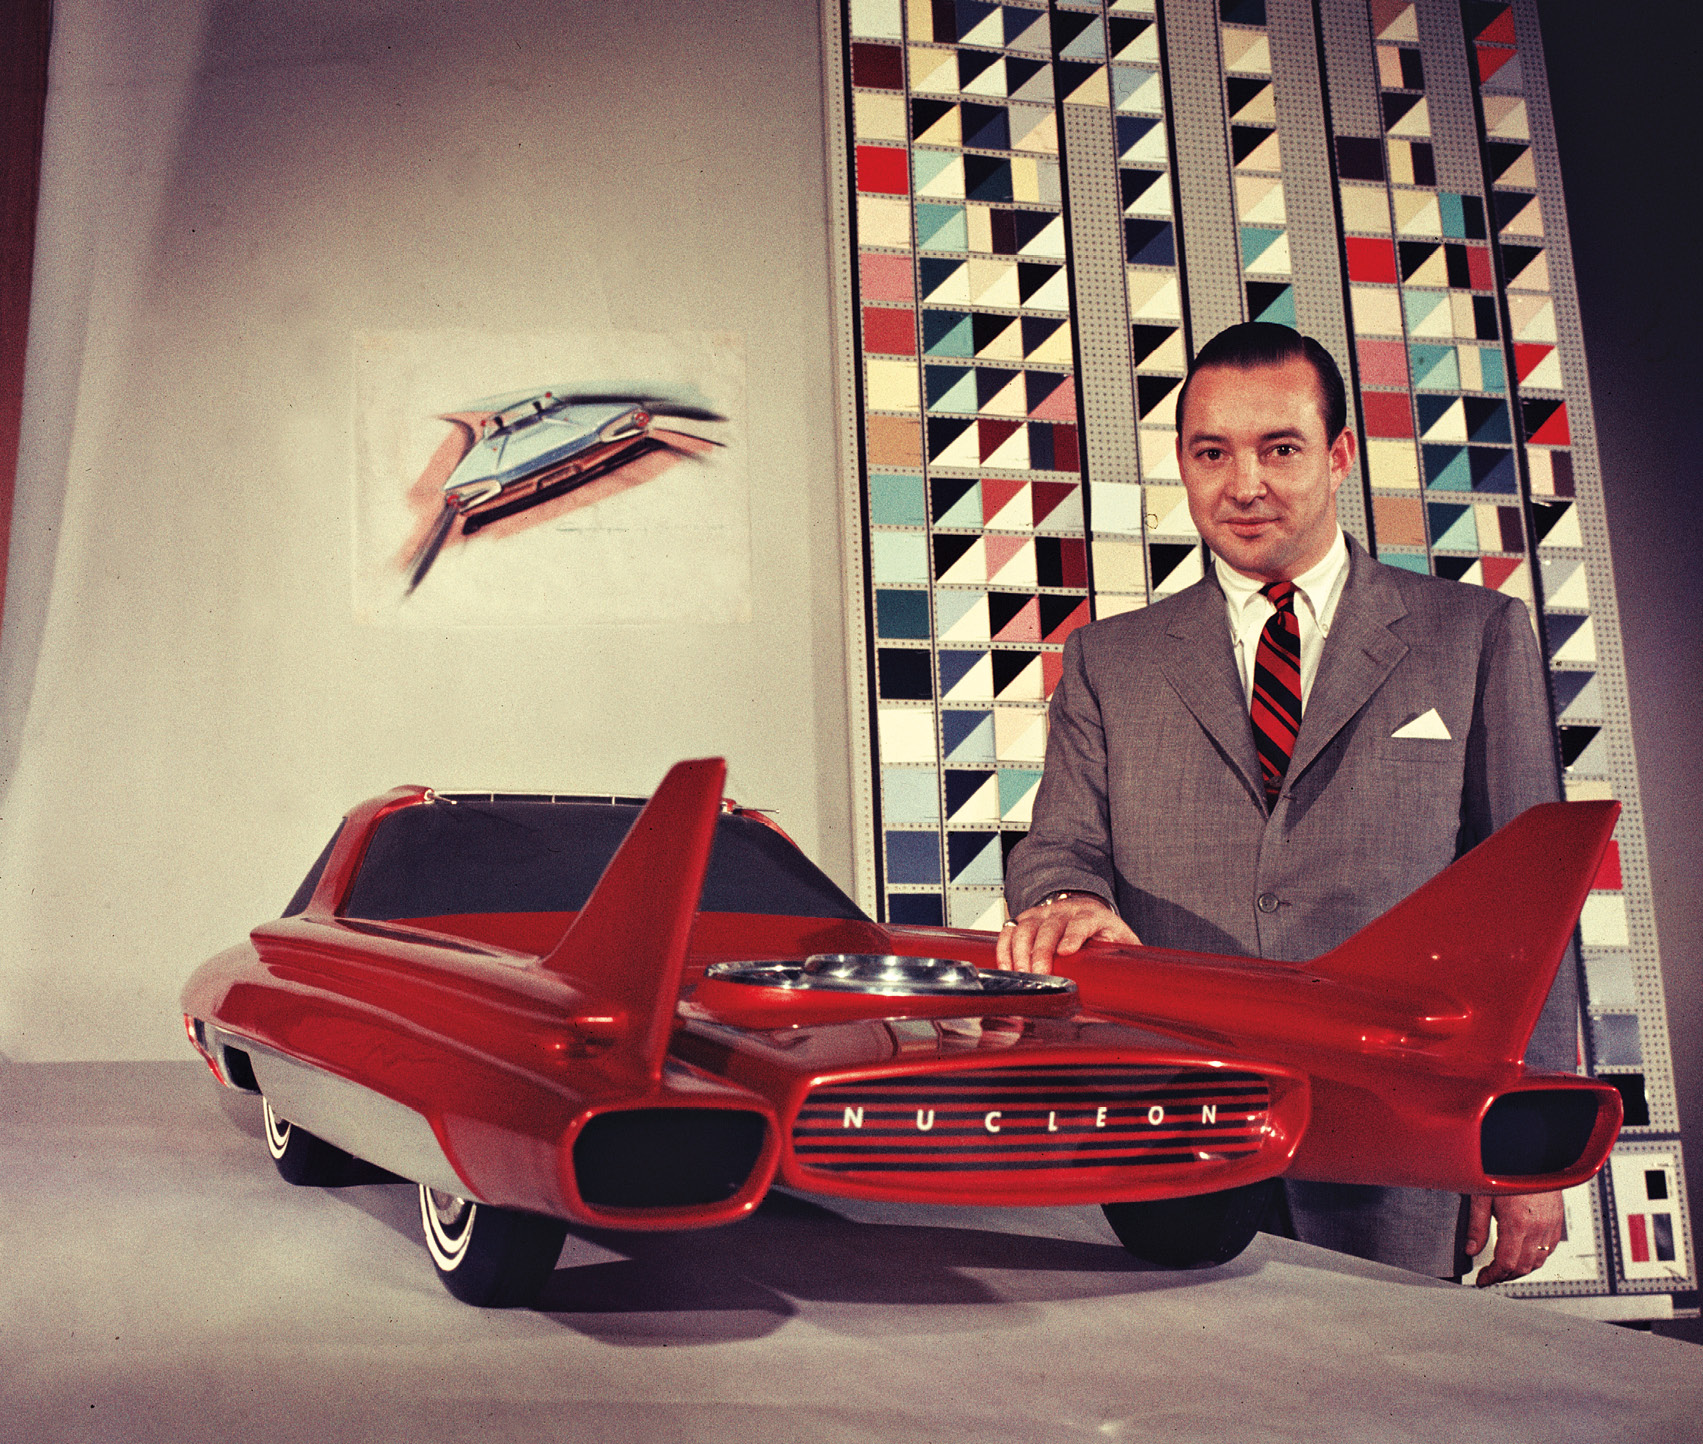 Ford's radical 1957 Nucleon promised uranium-powered motoring, but thankfully it was never built